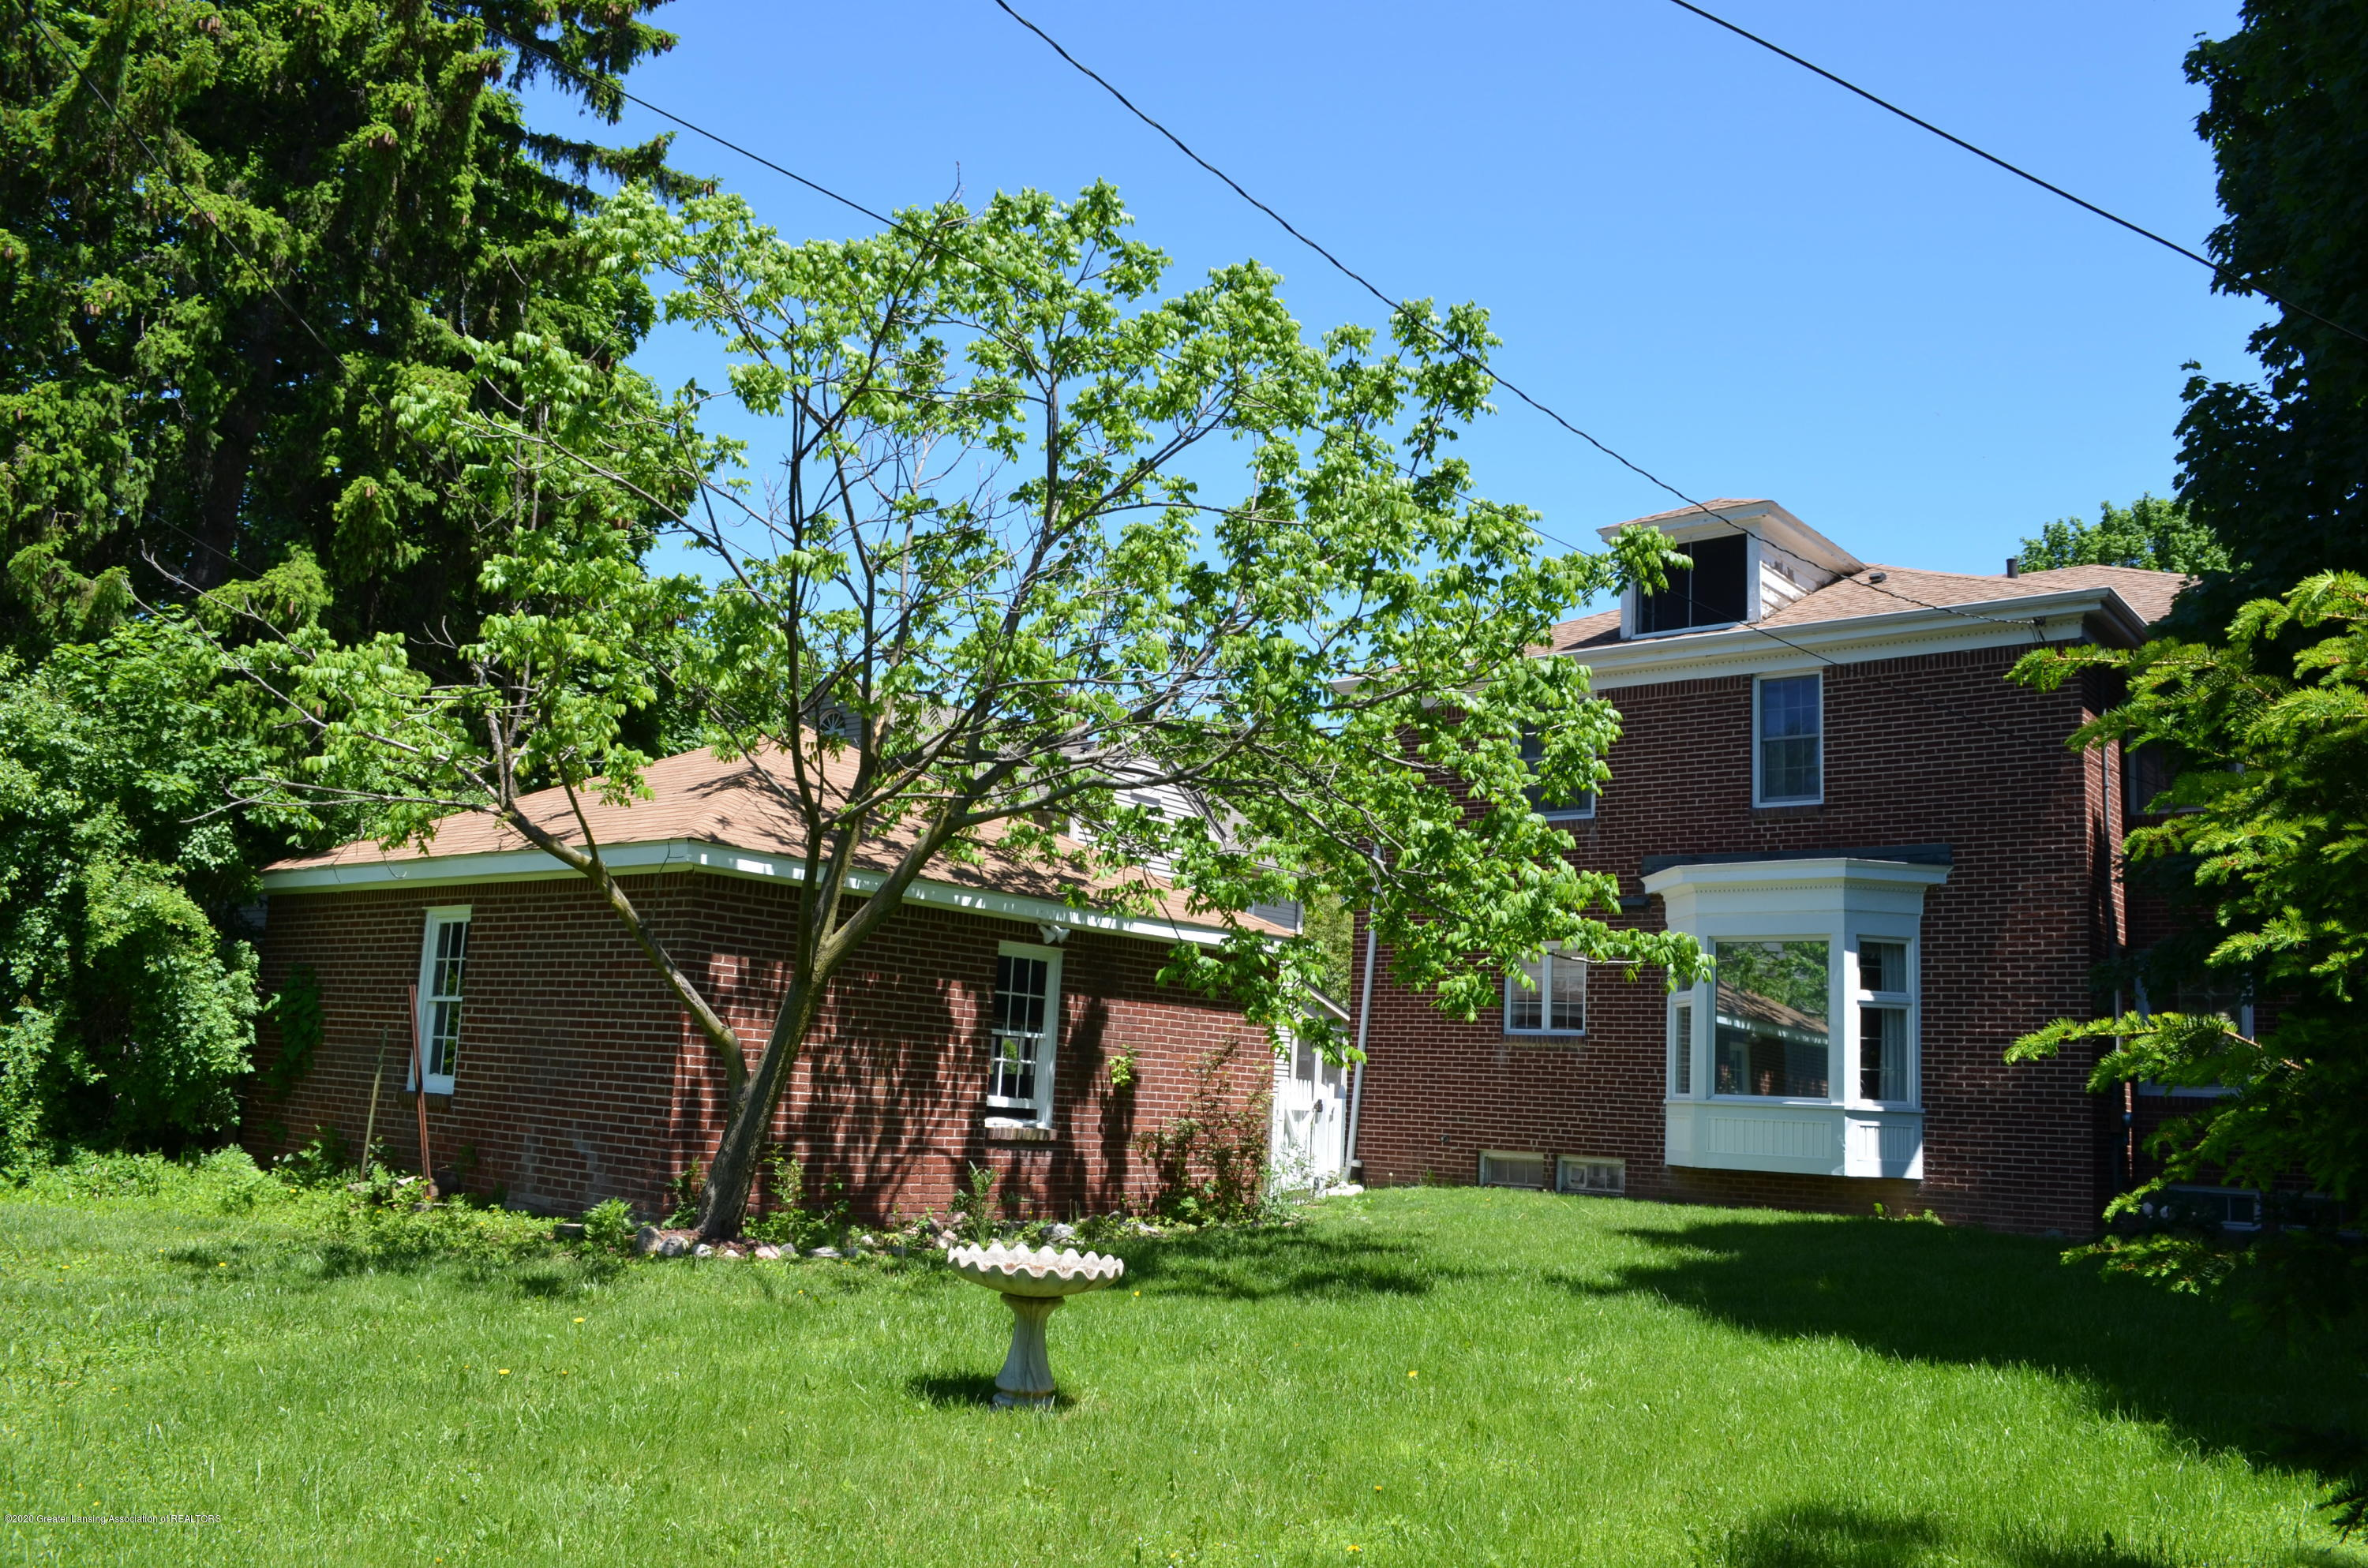 615 Bailey St - Back Yard View - 46